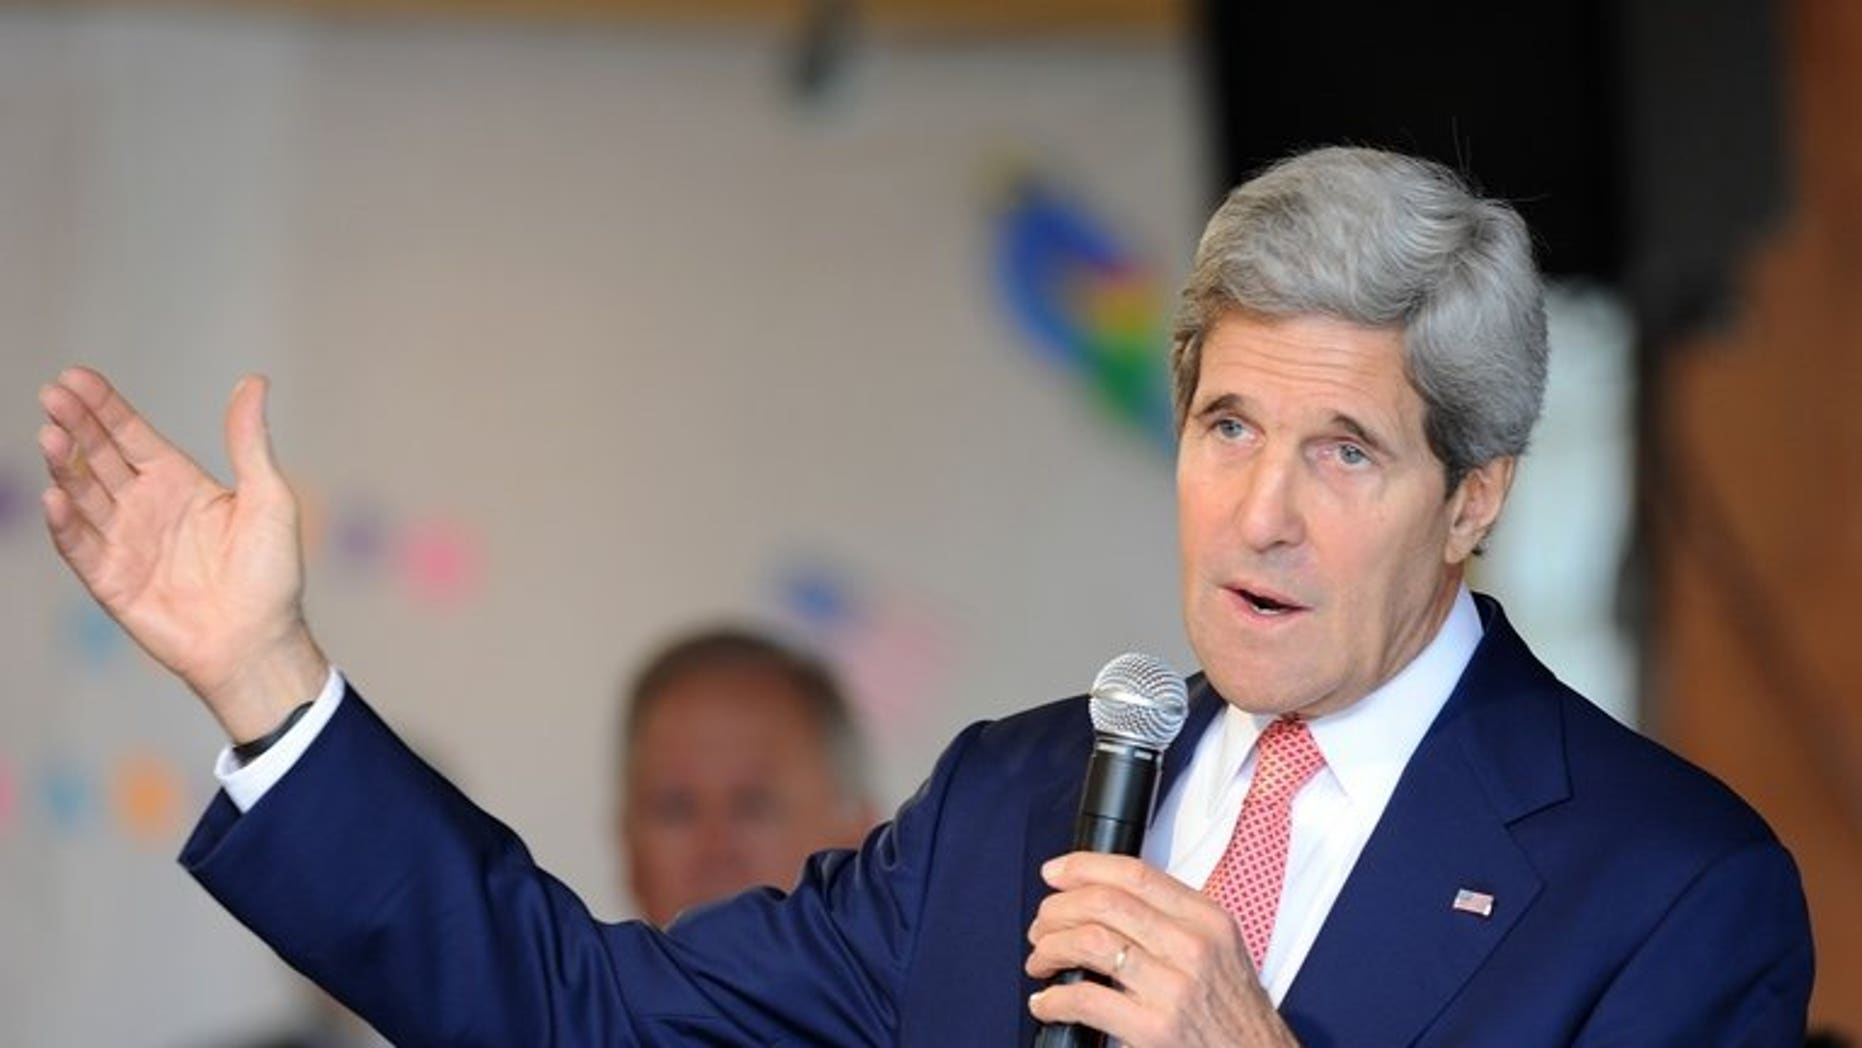 US Secretary of State John Kerry delivers a speech for US embassy employes and relatives in an event in Brasilia on August 13, 2013. Palestinian president Mahmud Abbas is committed to pursuing peace talks with Israel despite the unresolved issue of Israeli settlement building, Kerry said.